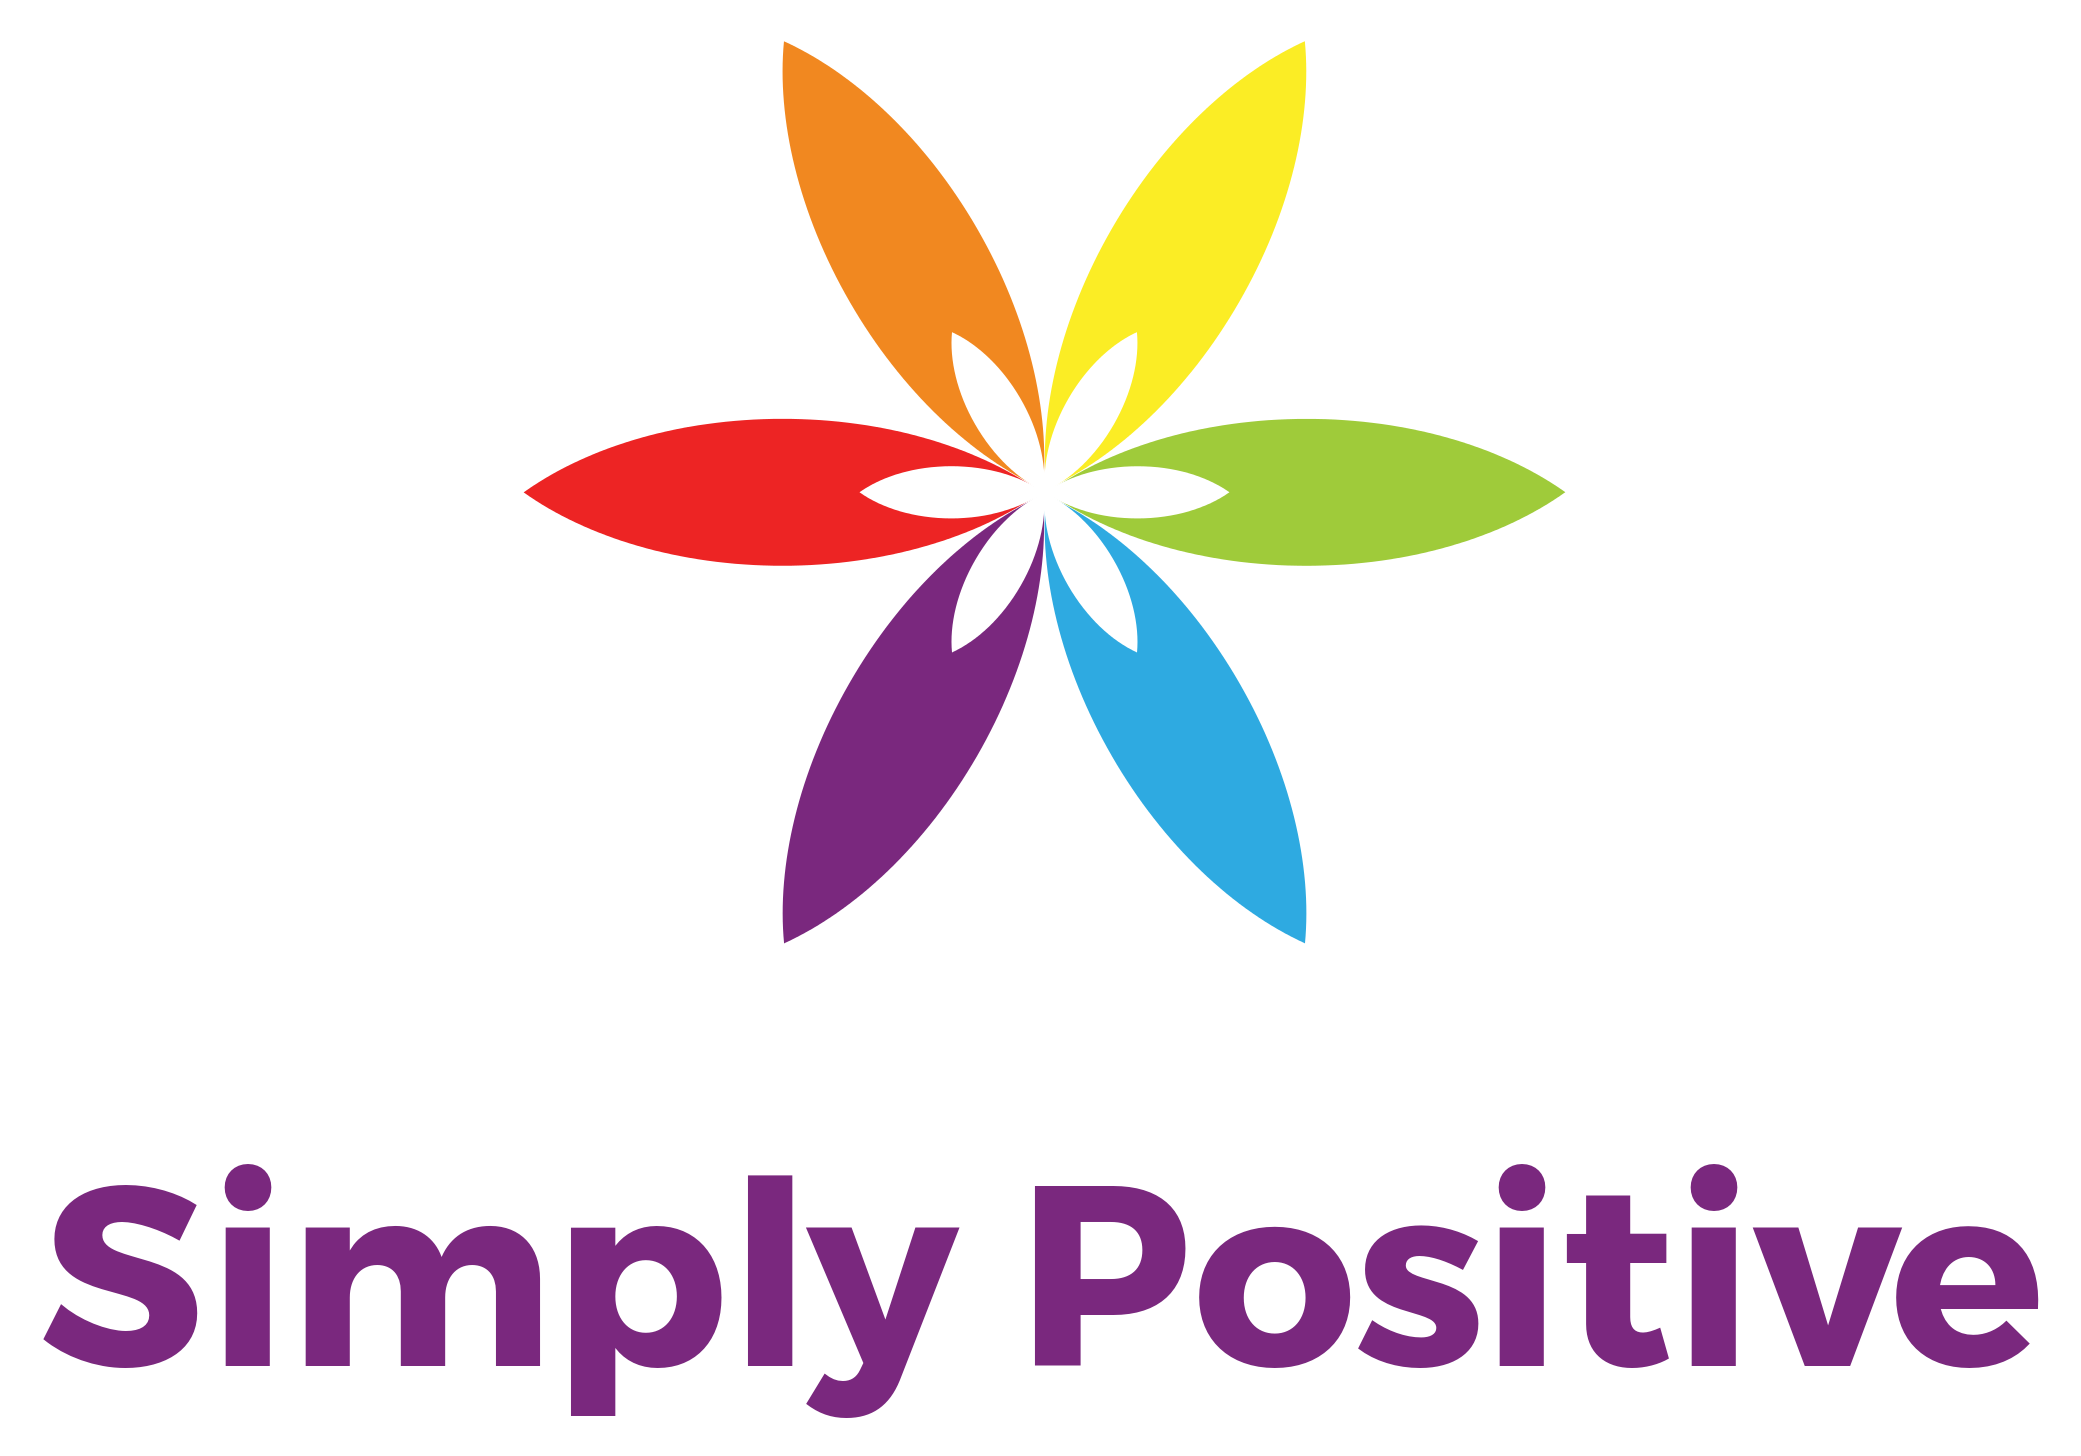 Simply Positive Lifestyle